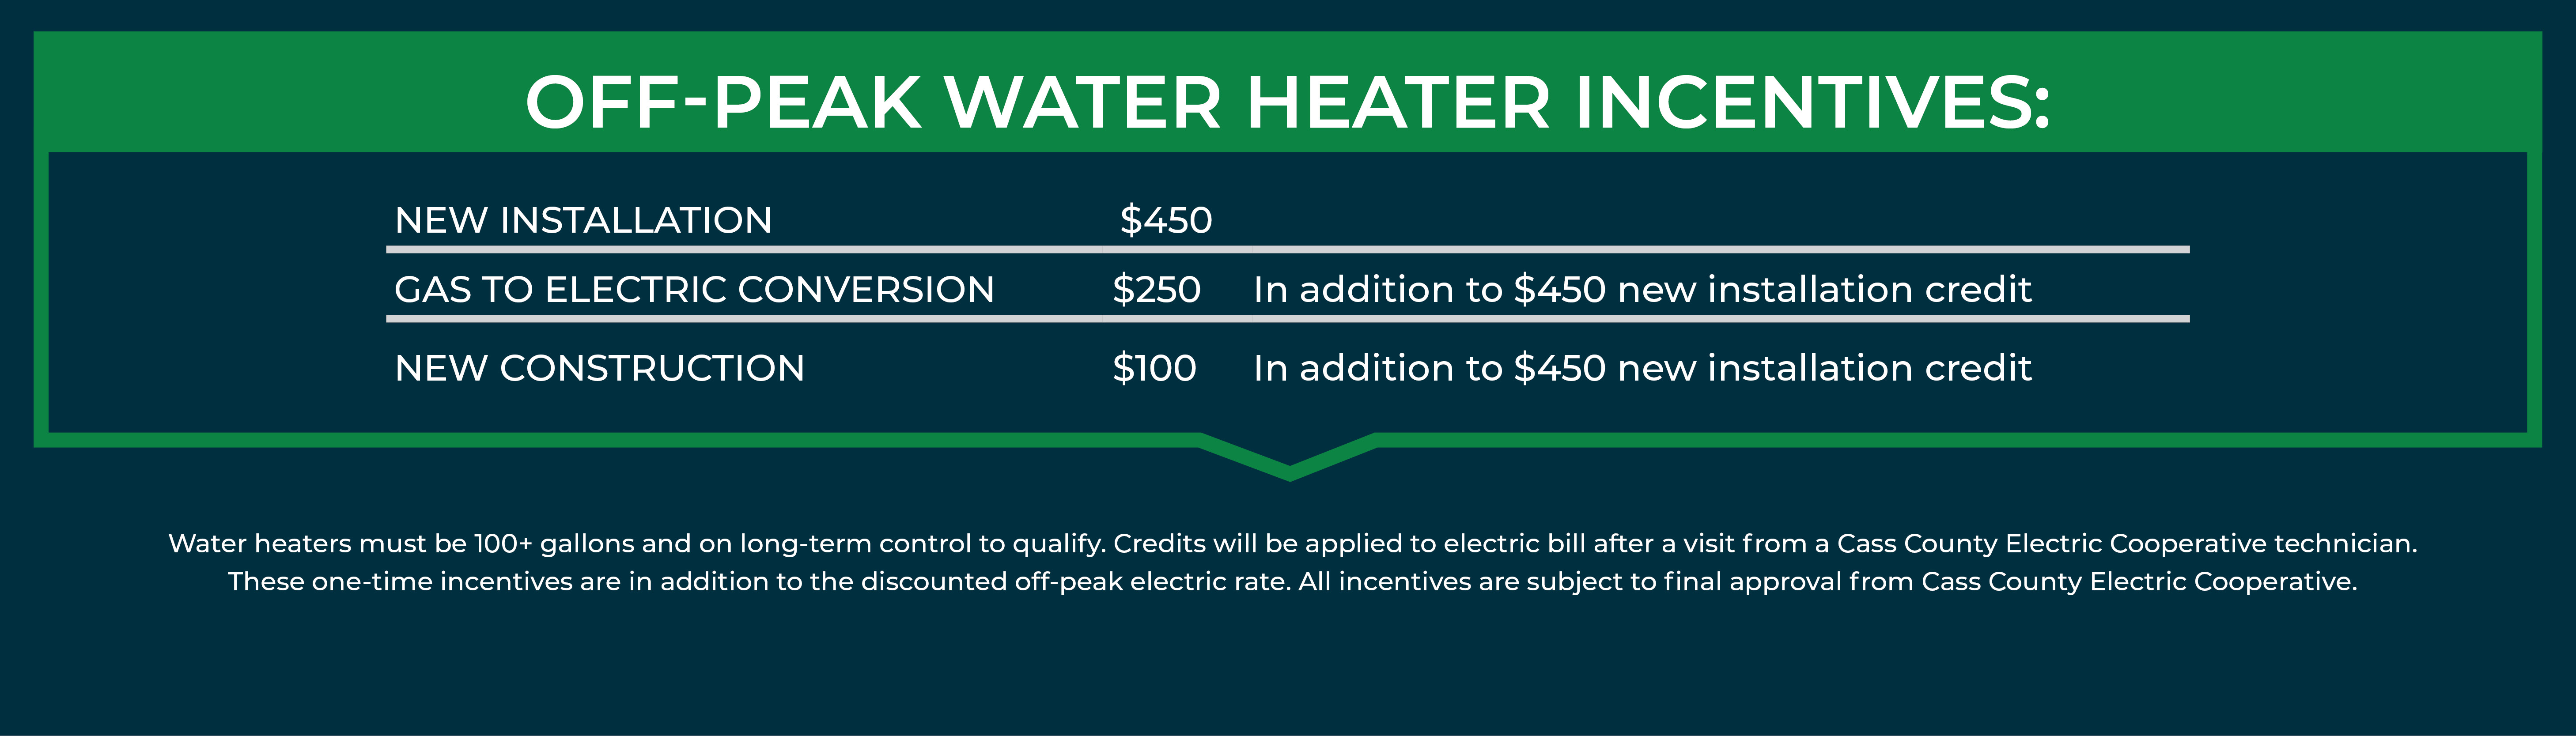 Off Peak water heater Incentives